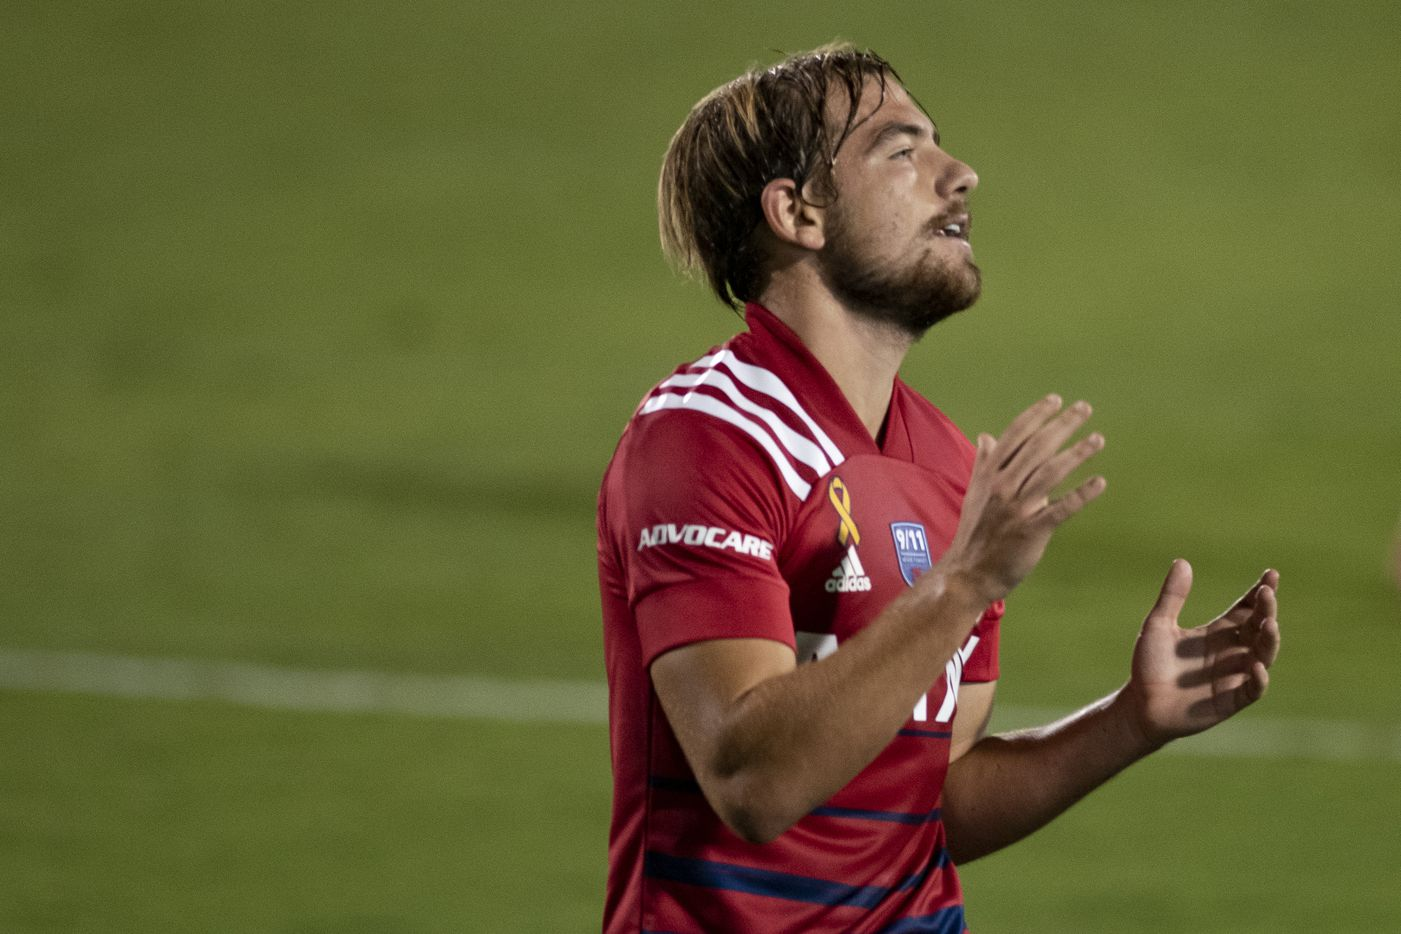 FC Dallas midfielder Paxton Pomykal (19) reacts after missing an attempted kick during FC DallasÕ home game against the San Jose Earthquakes at Toyota Stadium in Frisco, Texas on Saturday, September 11, 2021. (Emil Lippe/Special Contributor)